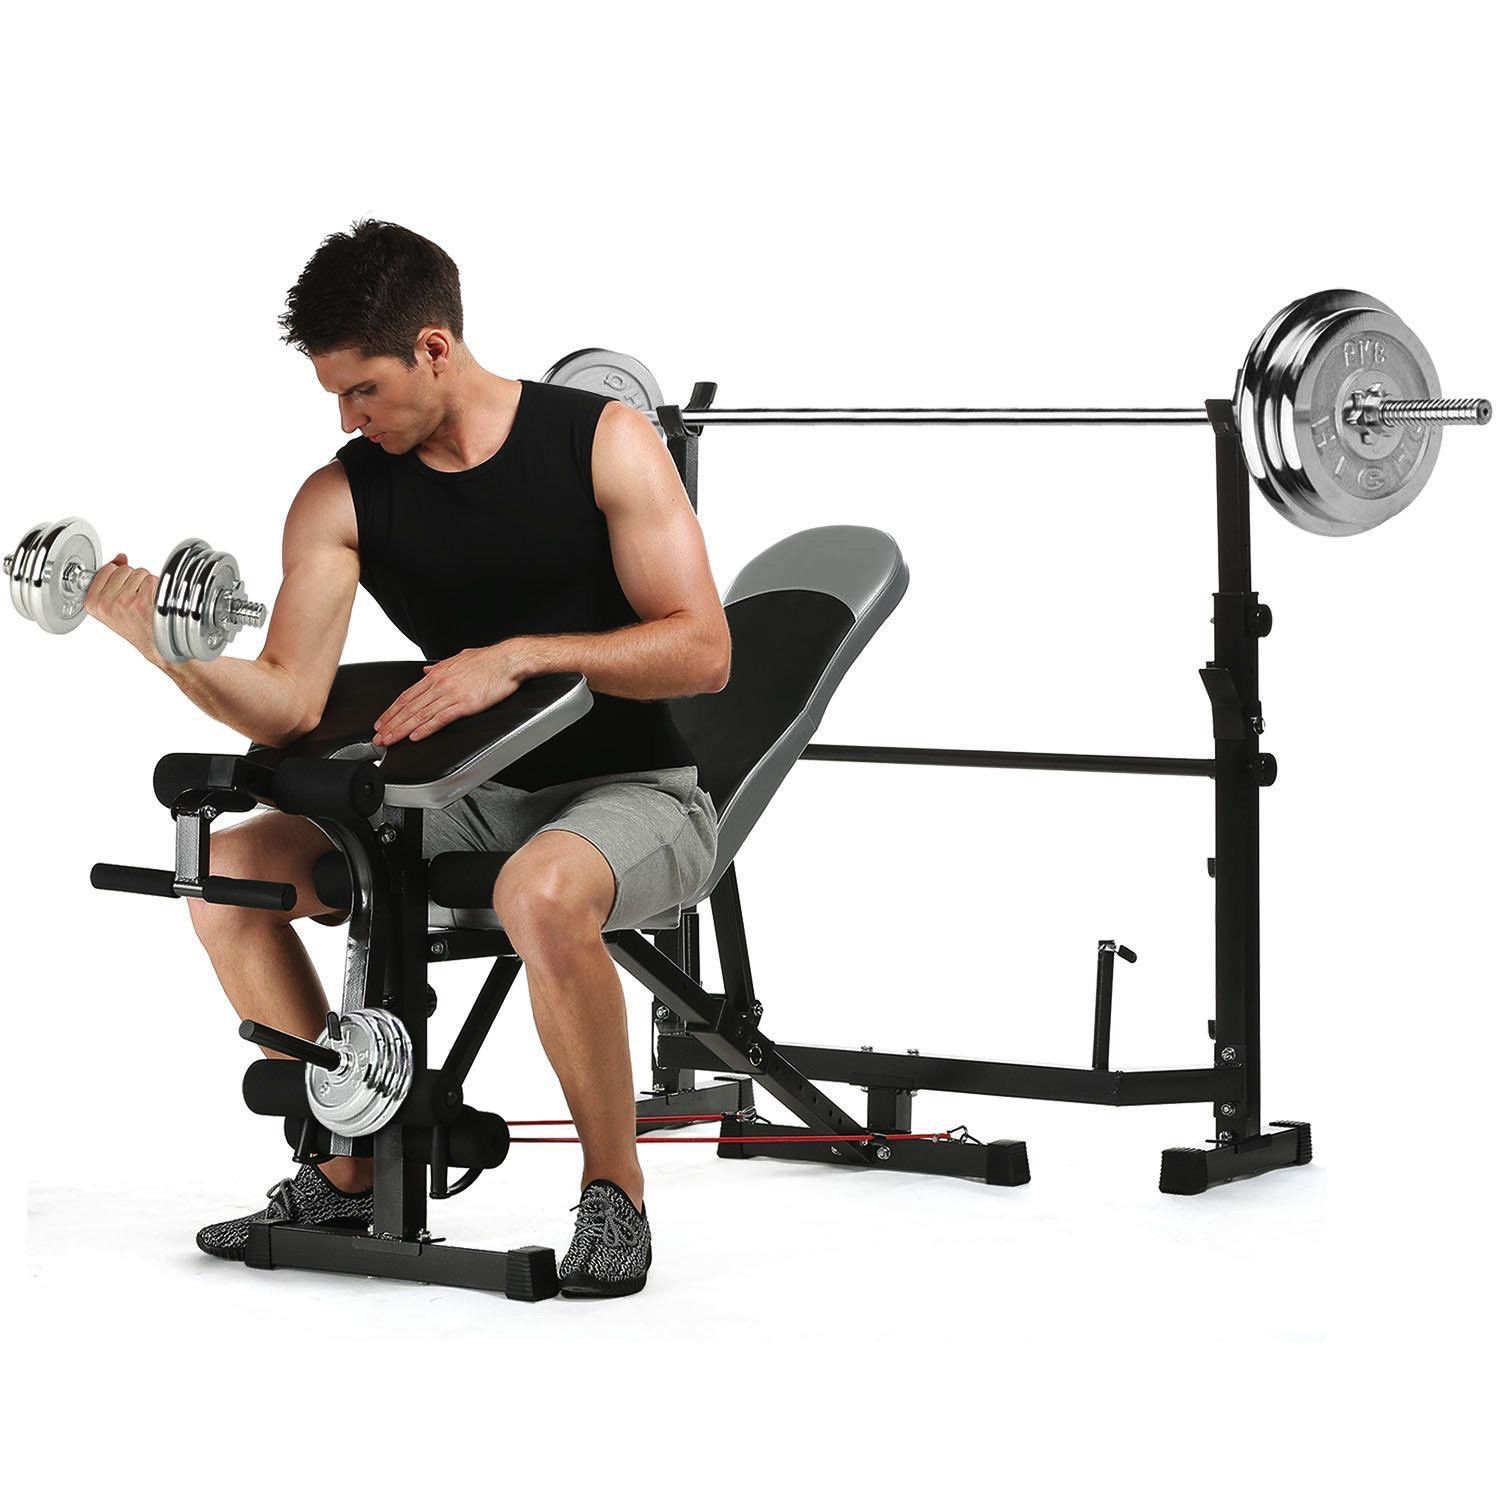 Brand new Olympic weight bench